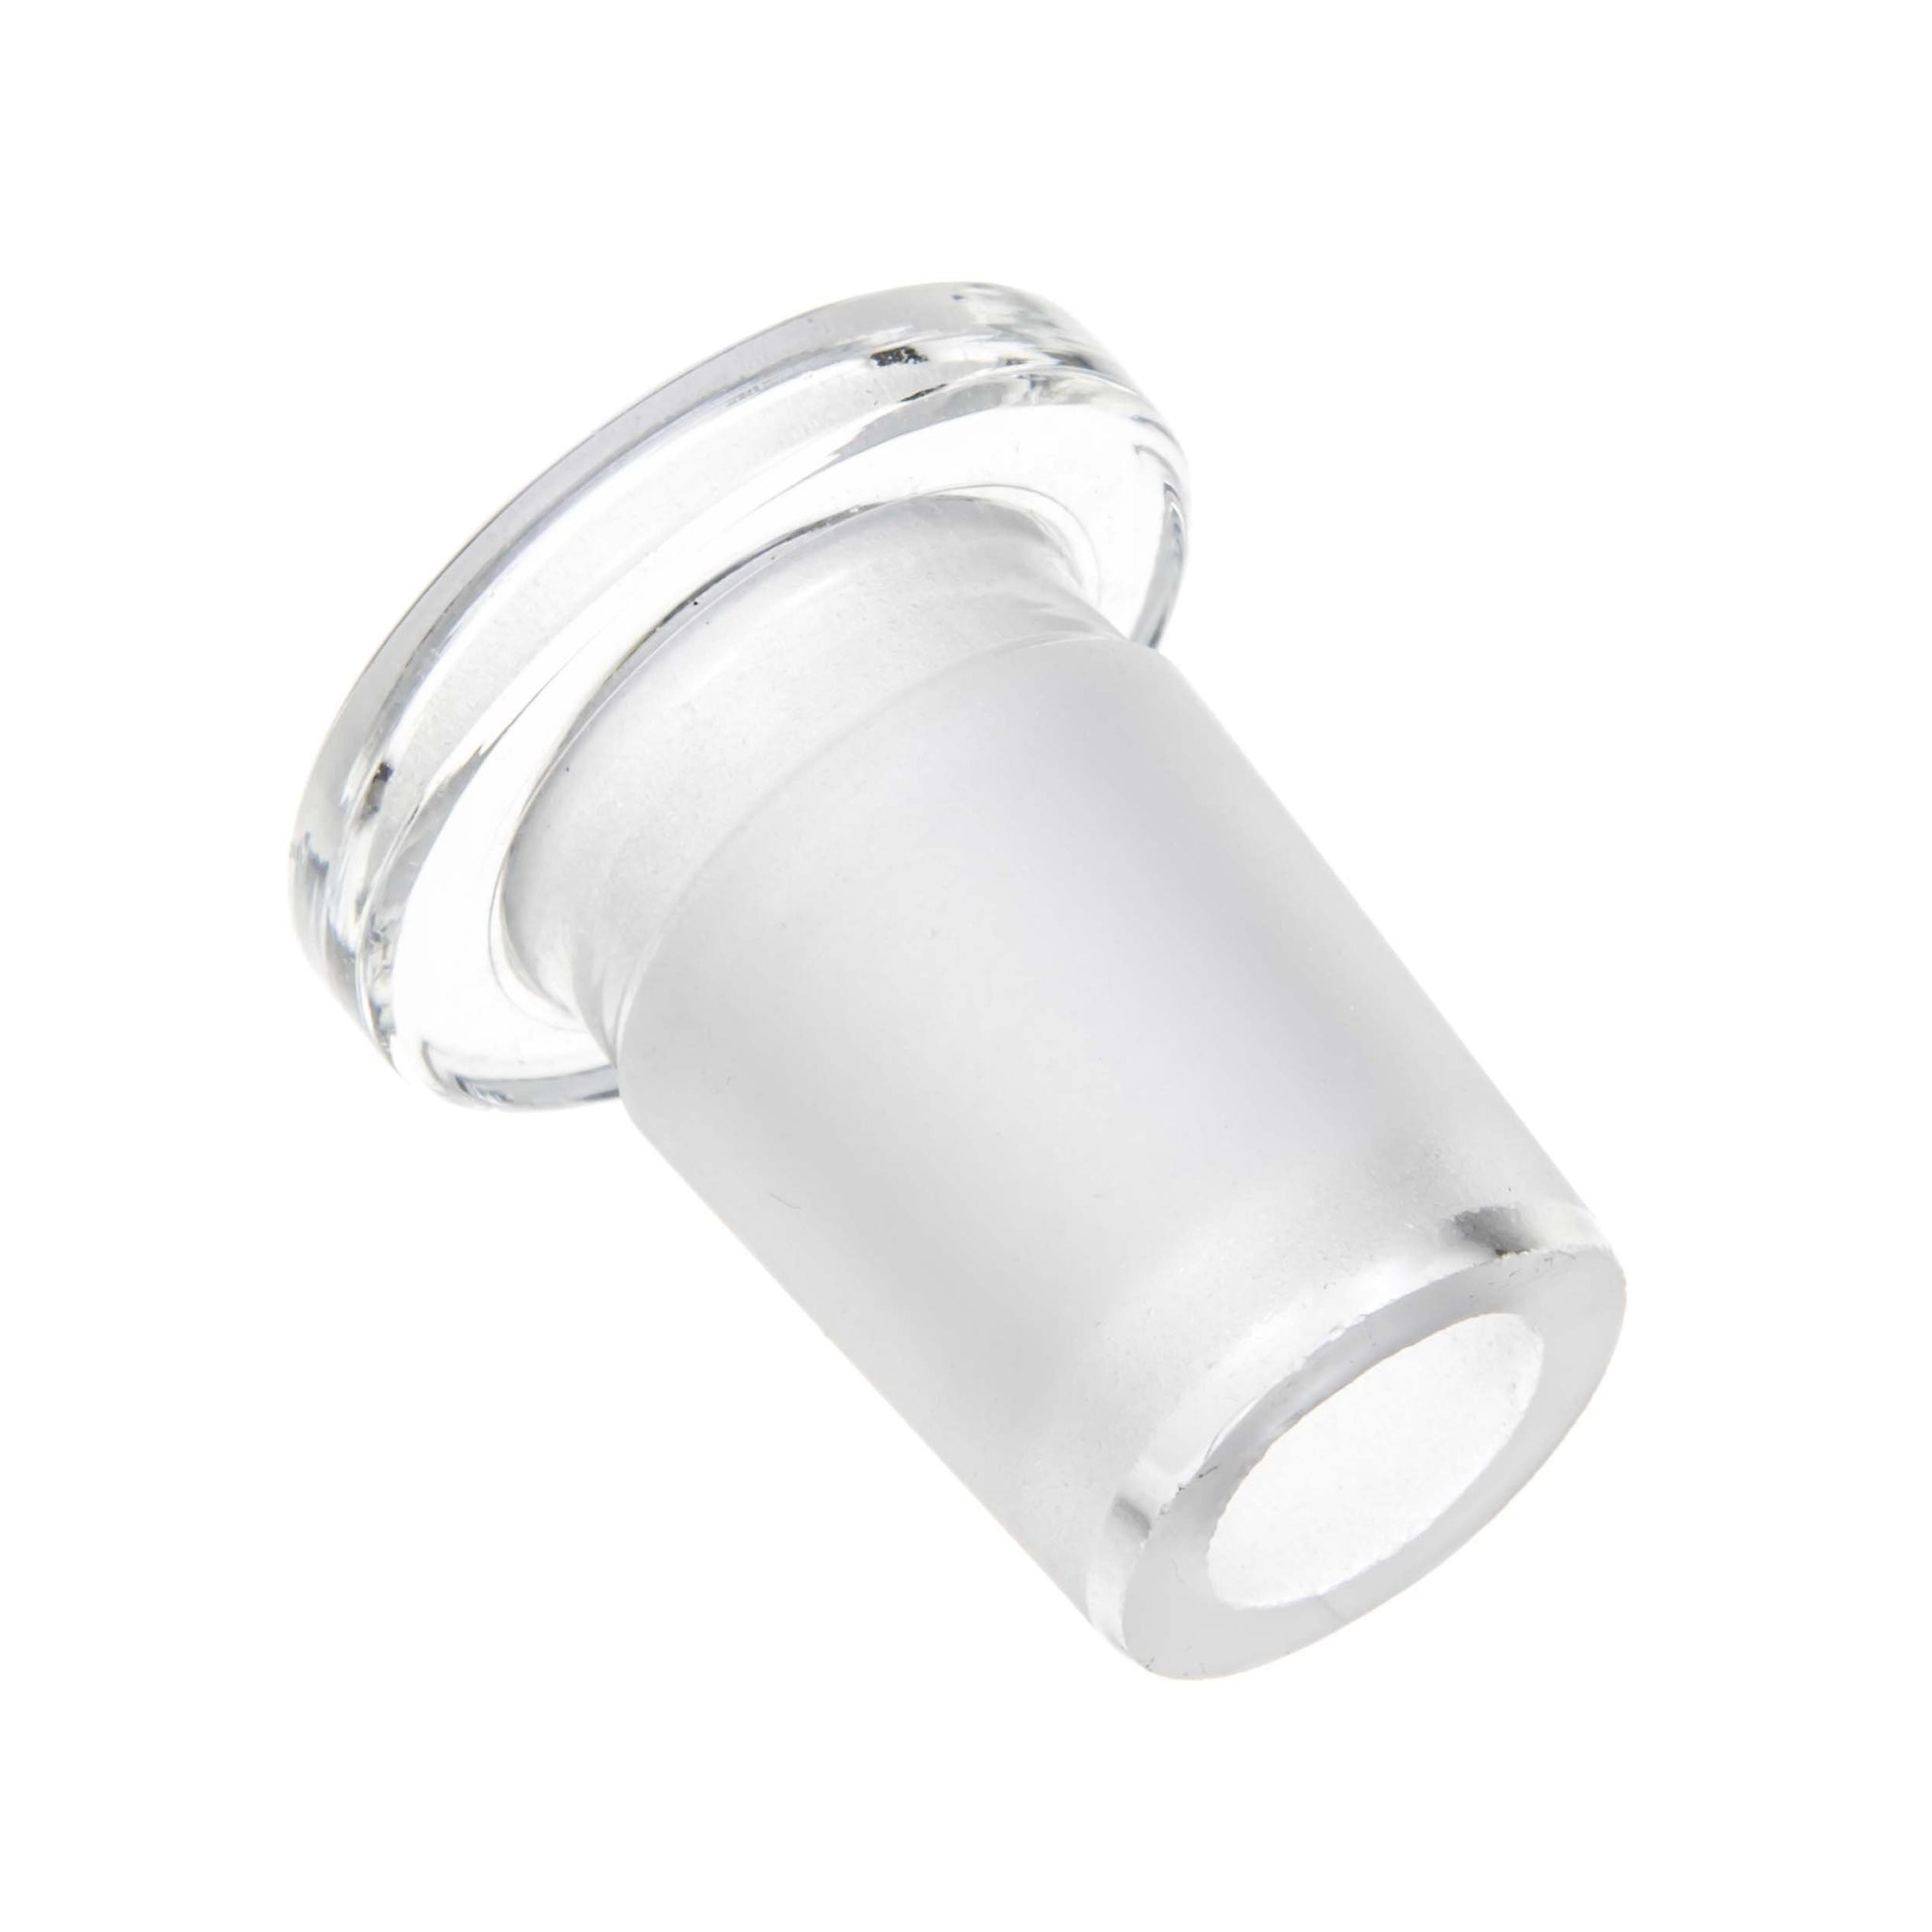 18mm Male to 14mm Female Low Profile Adapter